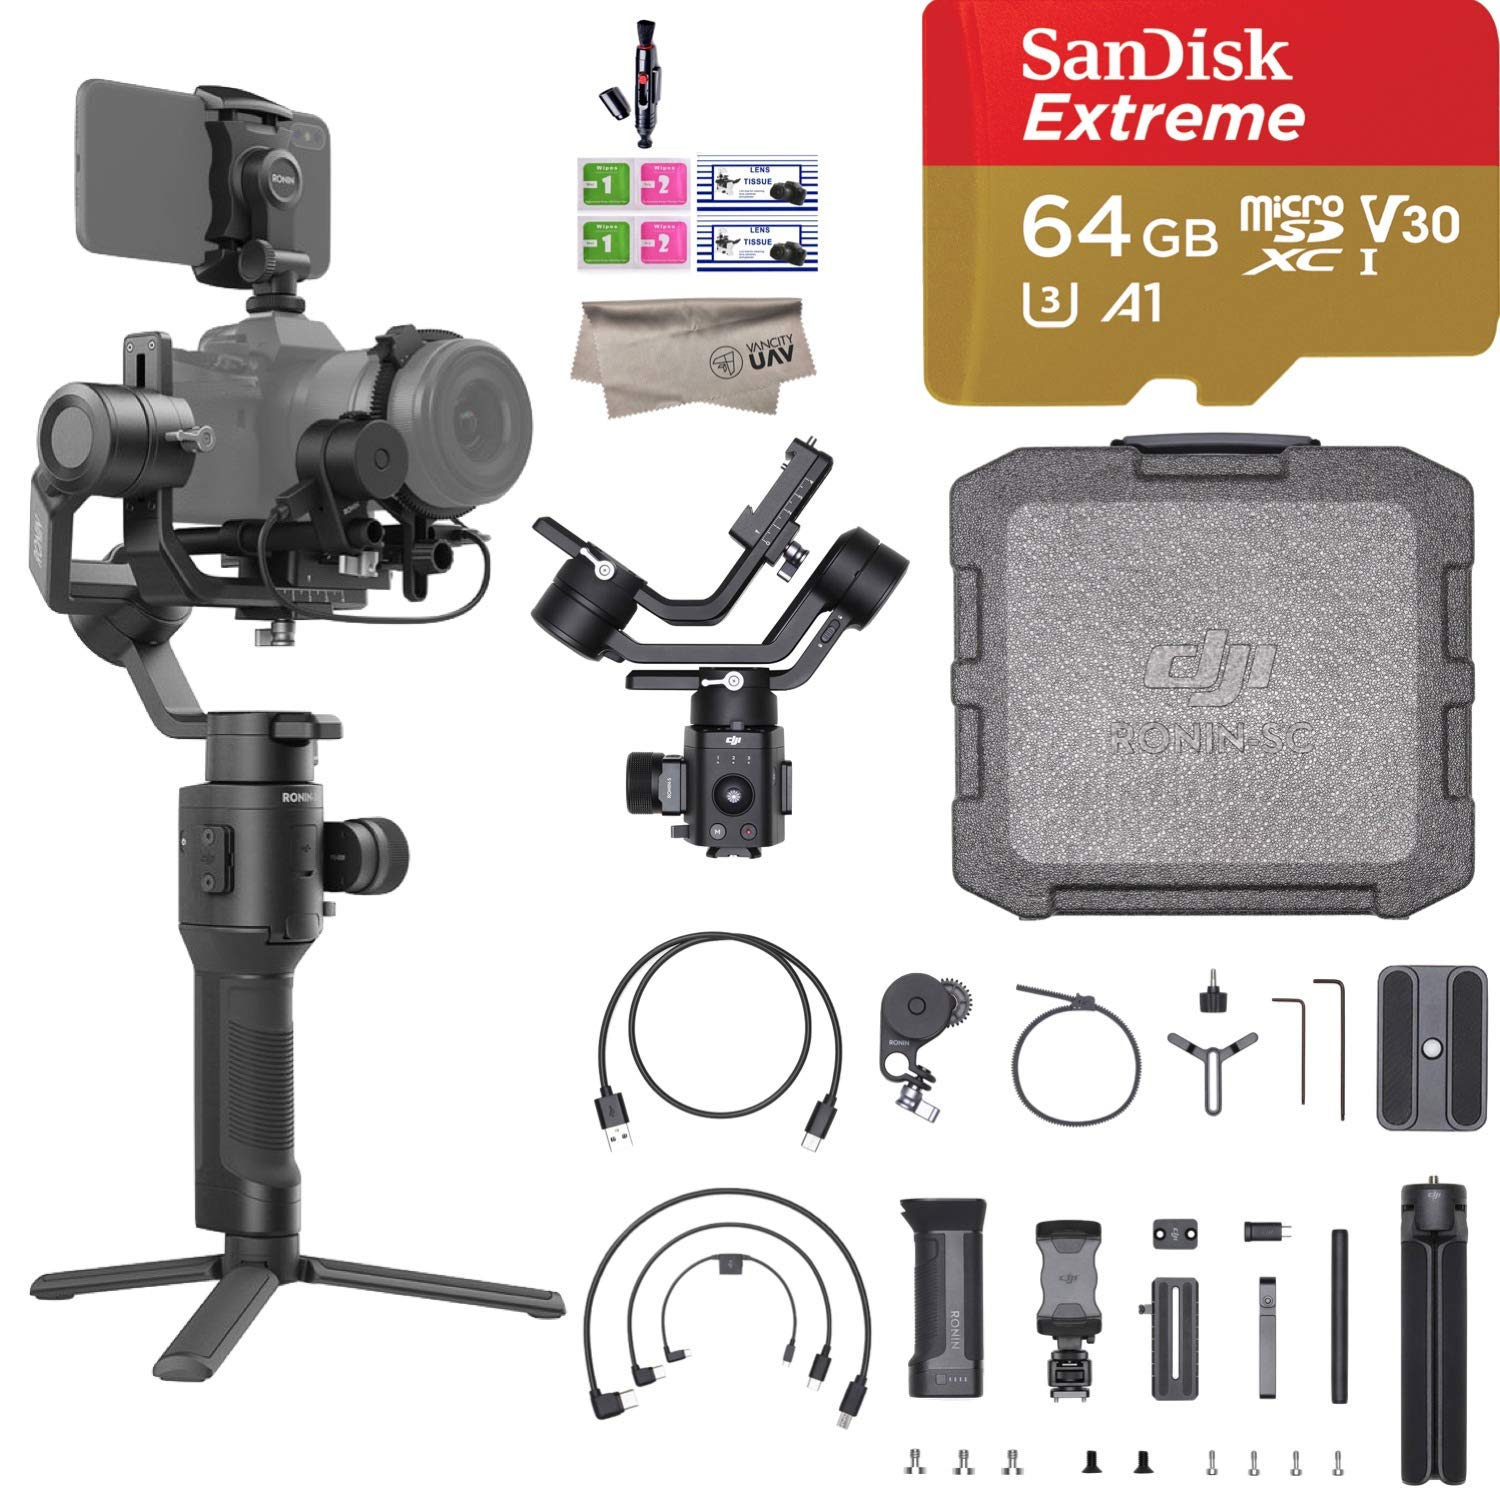 2019 DJI Ronin SC Pro Combo 3-Axis Gimbal Stabilizer for Mirrorless Cameras, Comes Focus Wheel, Focus Motor, Tripod, Phone Holder, and DJI Carrying Case, Up to 4.4lb Payload, 1 Year Limited Warranty by DJI